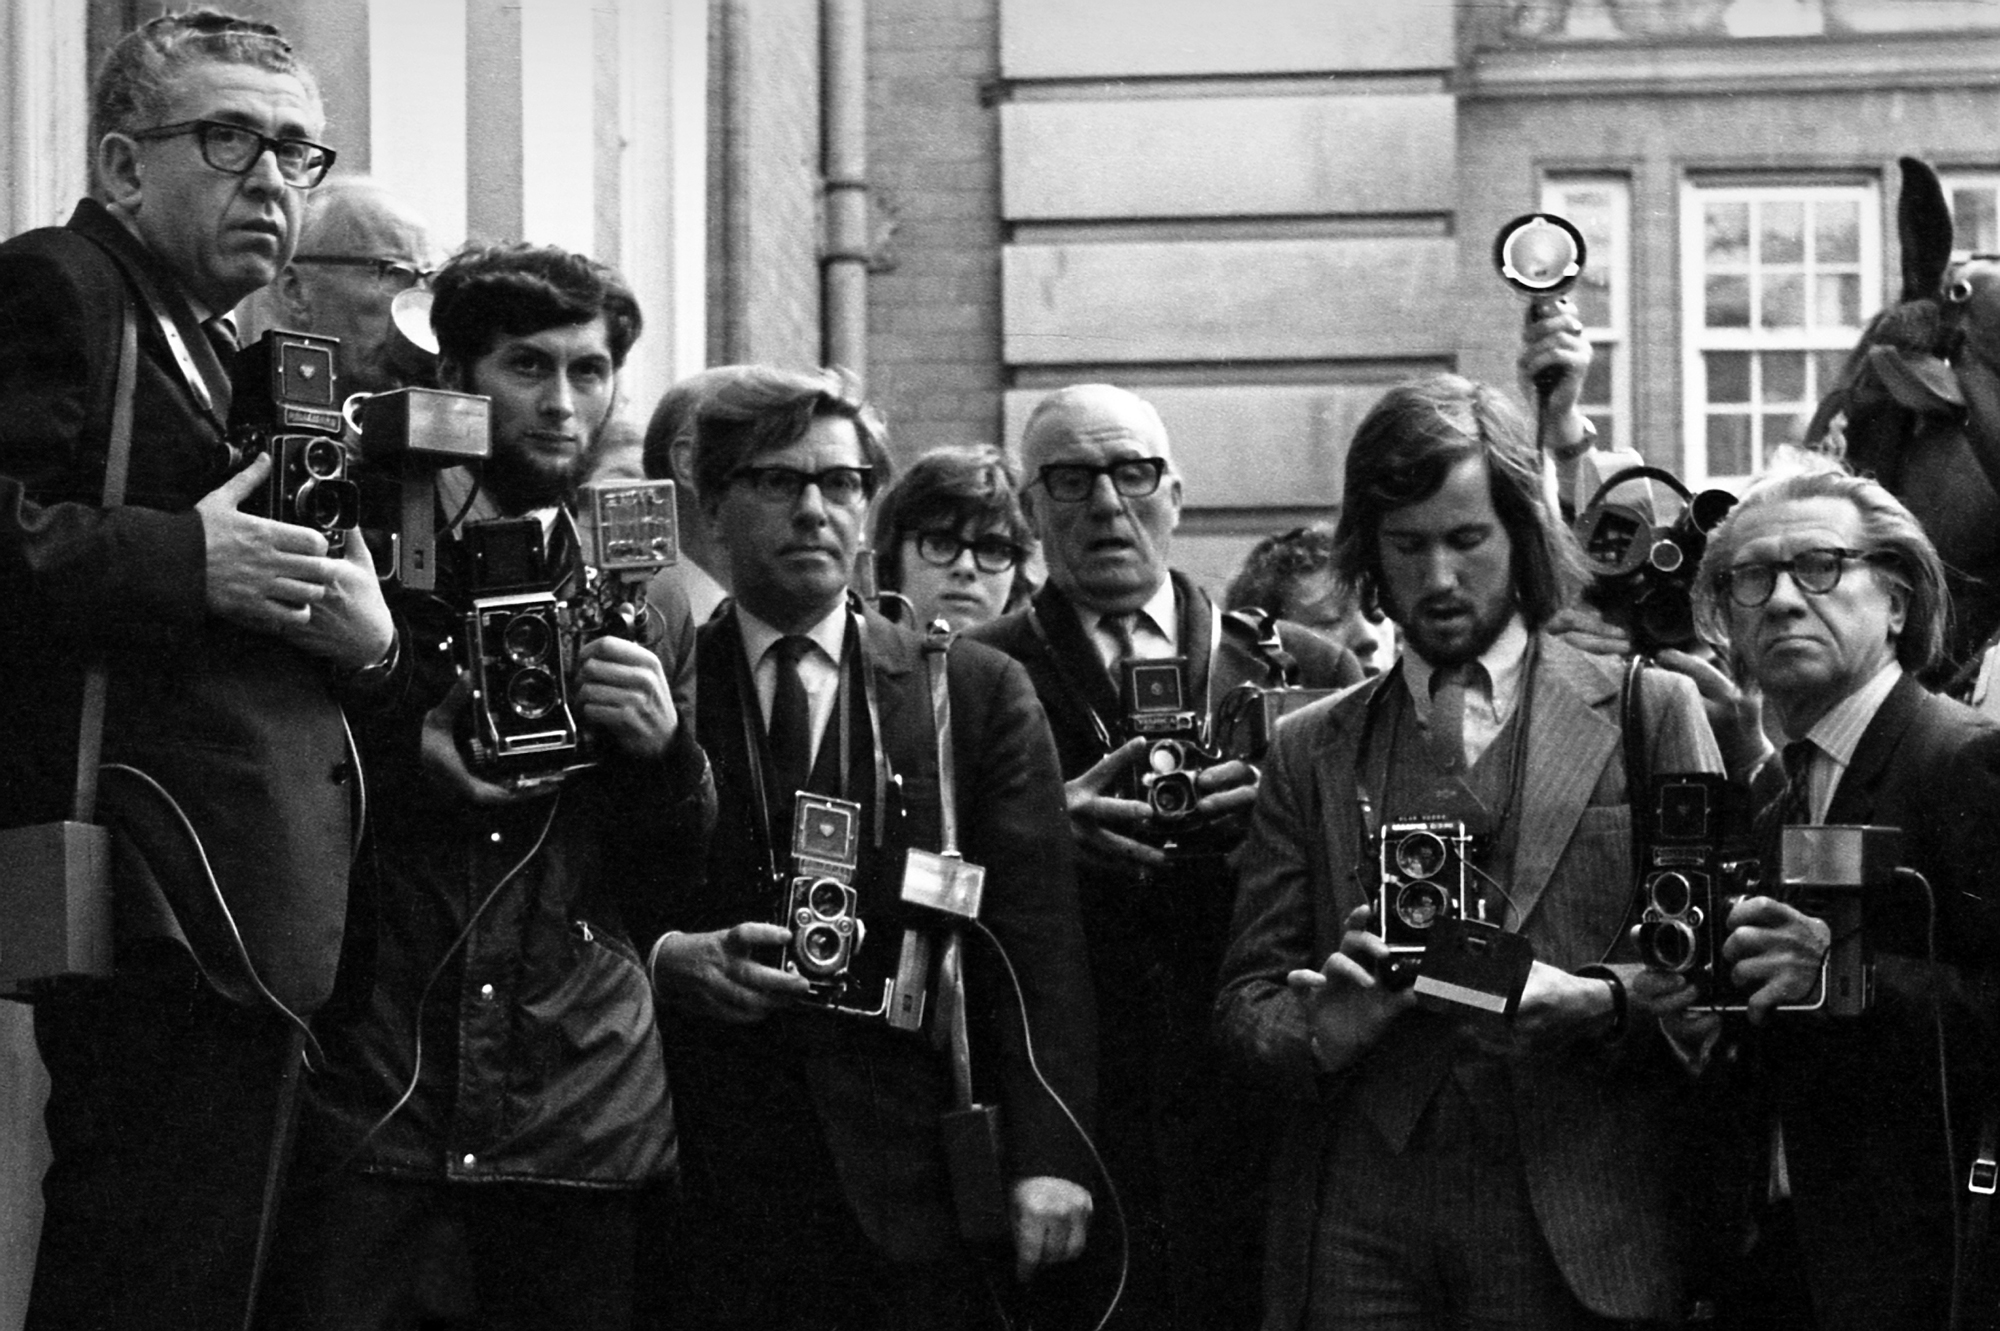 The Photographers, London 1973